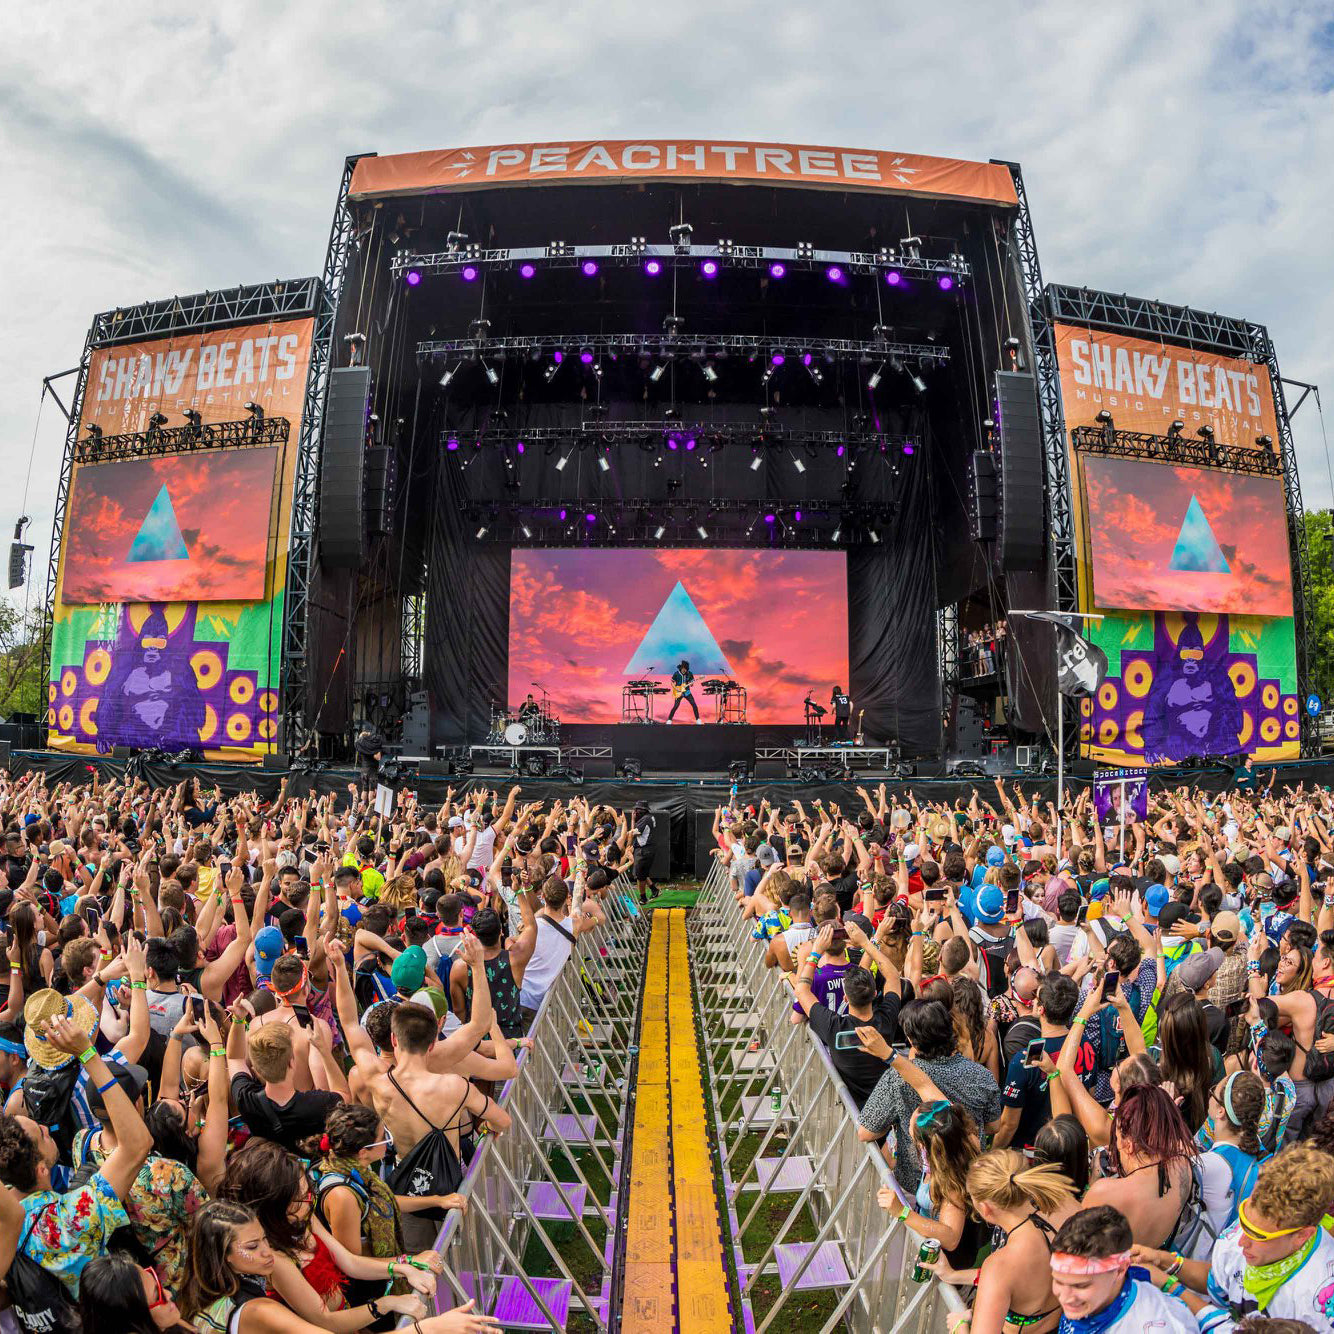 Top 12 Sets Of Shaky Beats Festival 2019